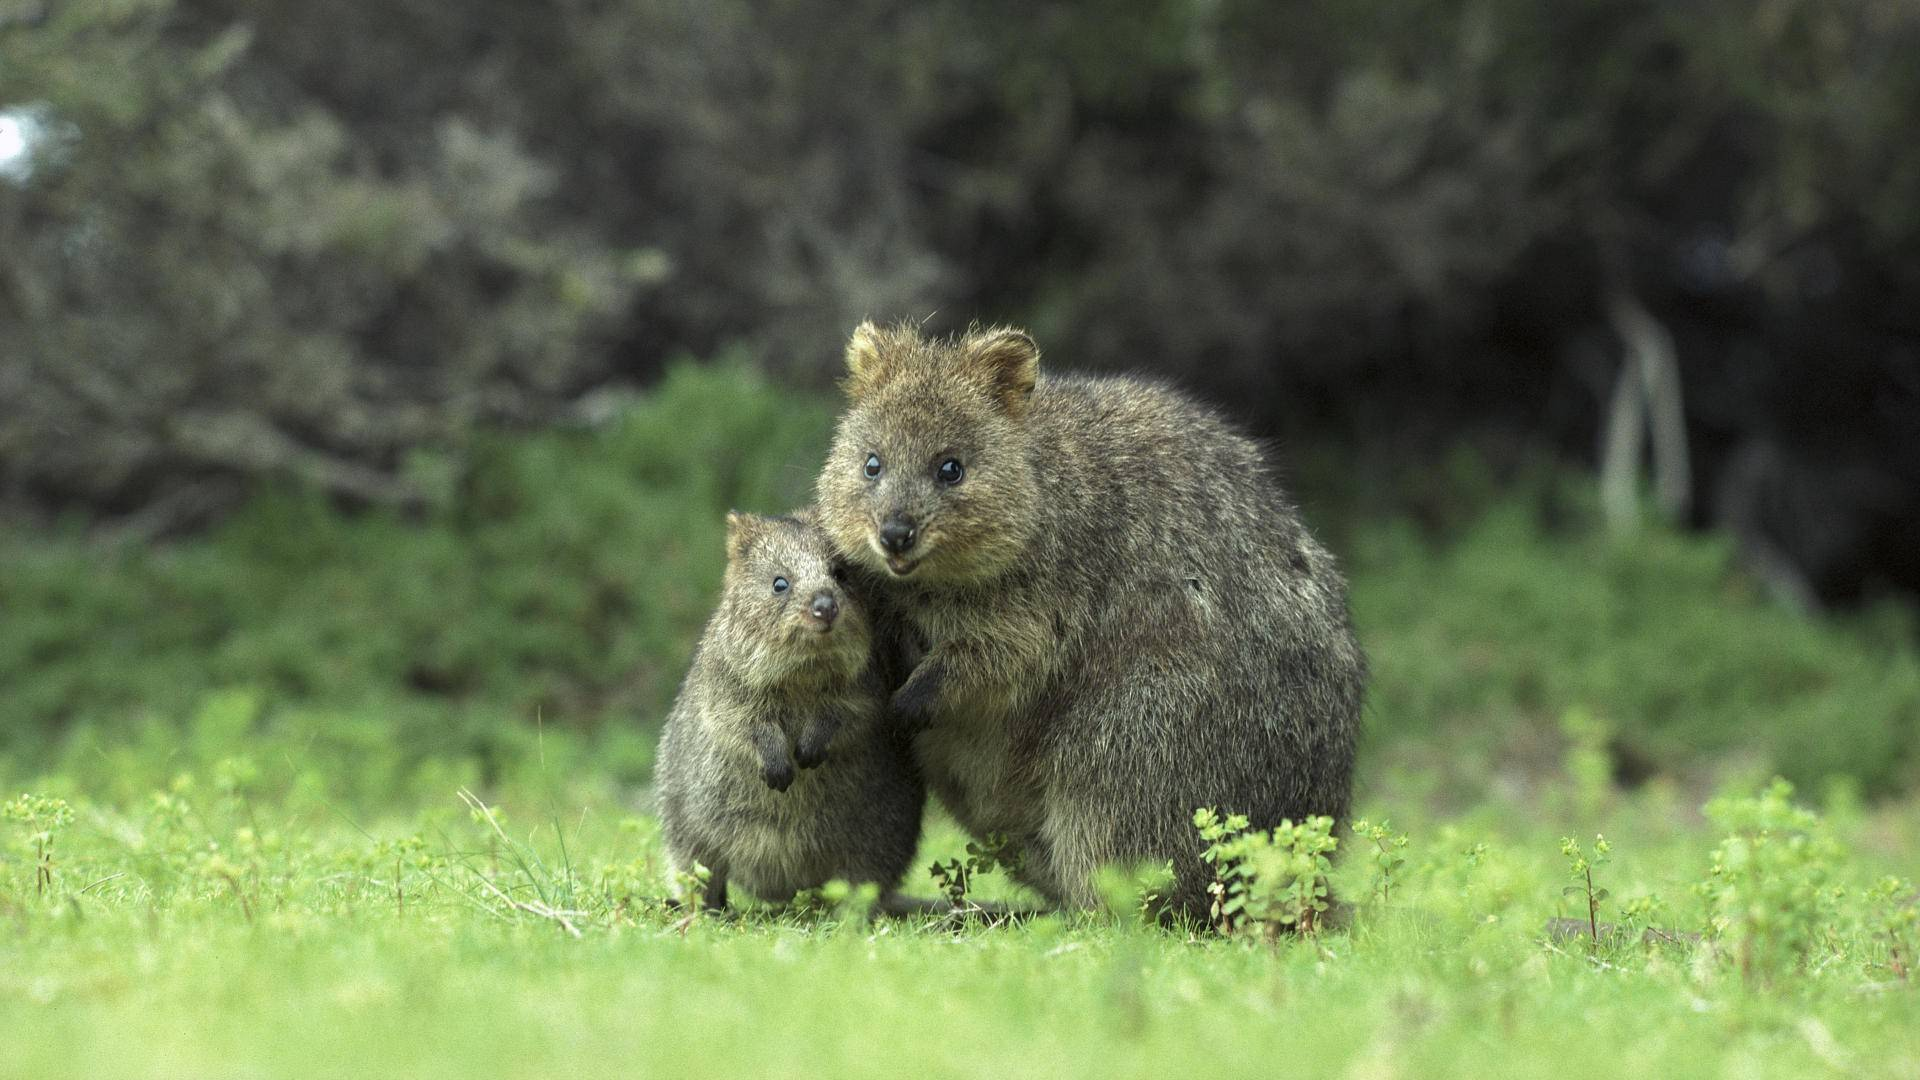 Quokka Eating Gif Quokka eating. Animals For Quo.